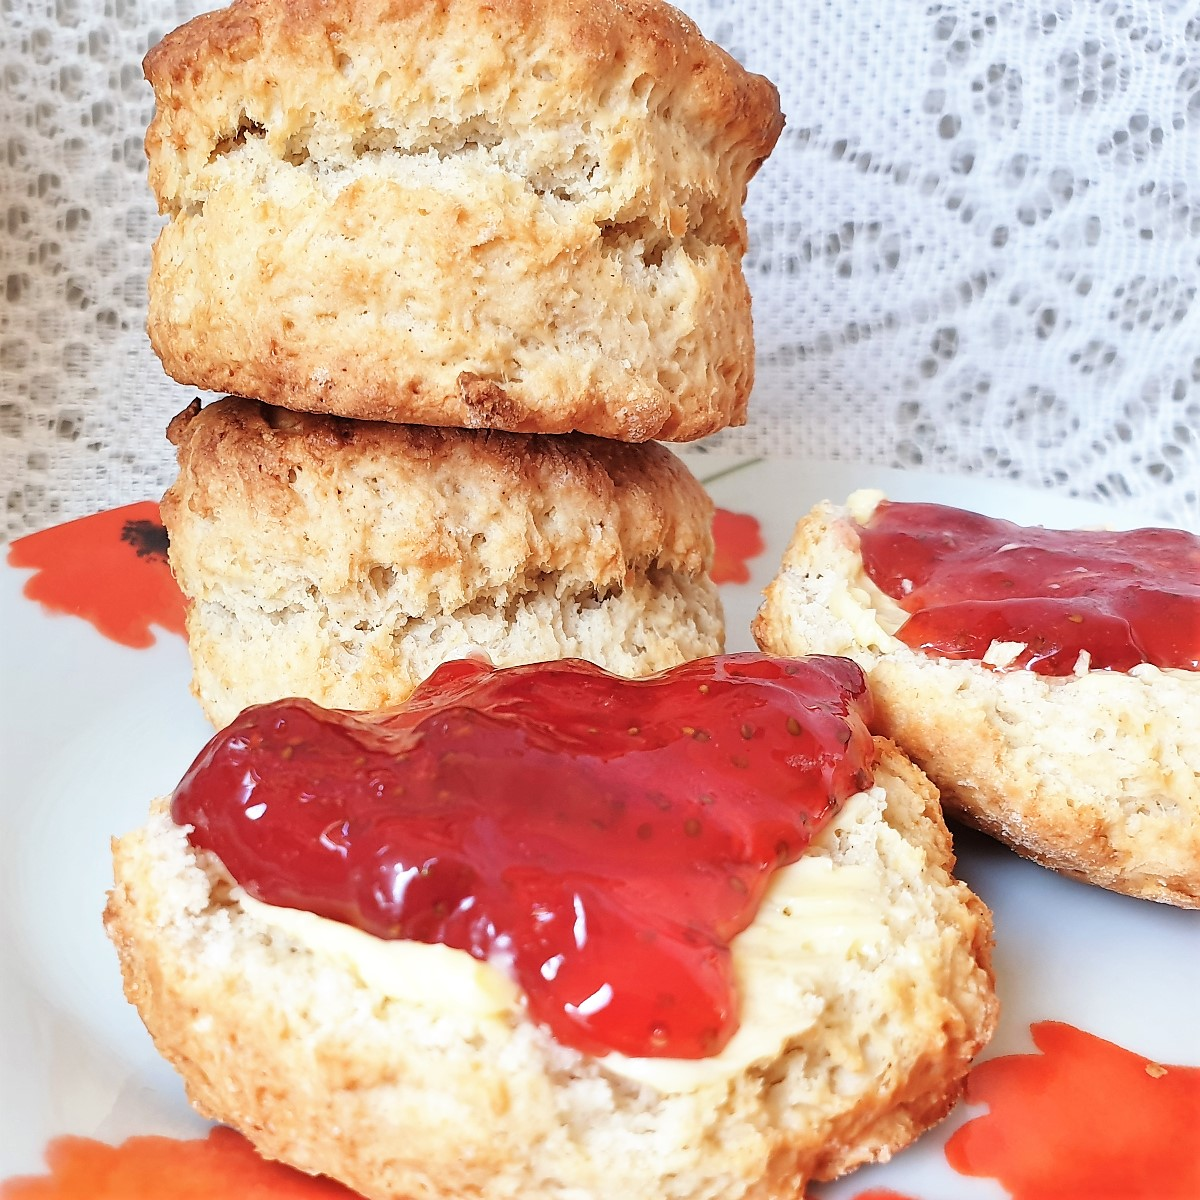 Strawberry jam scones on a plate.